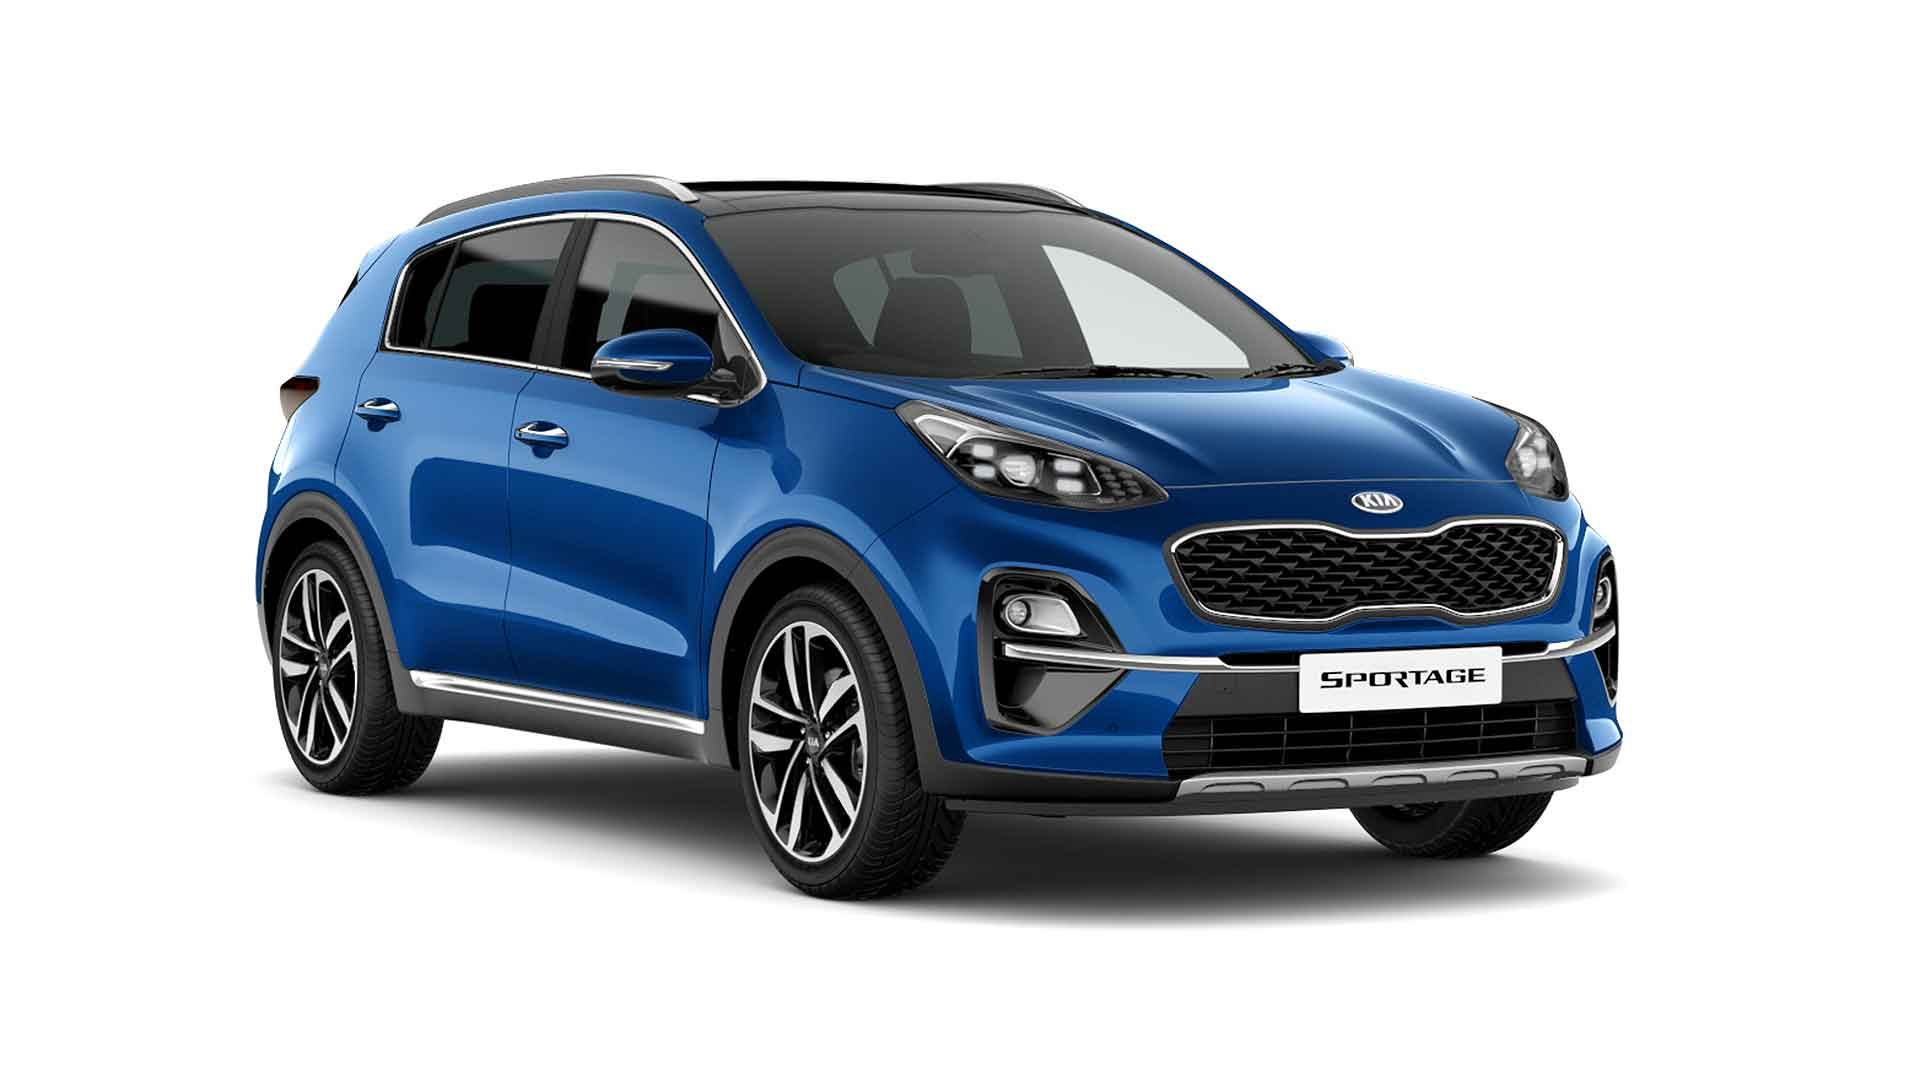 2020 Kia Sportage Update Prices Specs And Ordering Dates In 2020 Kia Sportage Kia Sportage